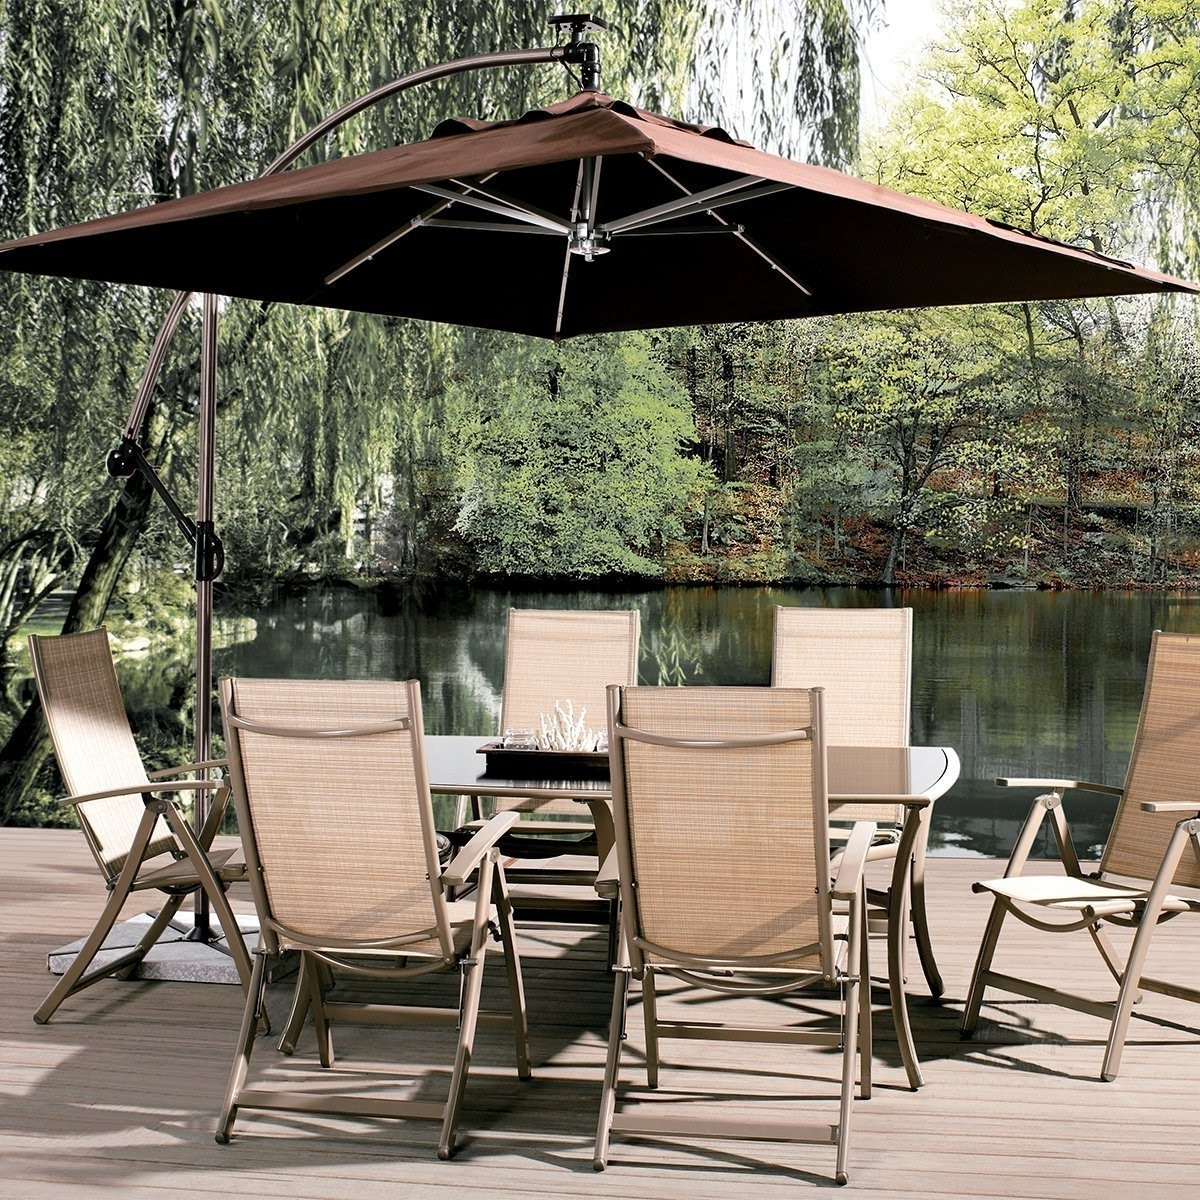 Most Recent Square Cantilever Patio Umbrellas In Abba Patio 8 Ft Square Outdoor Solar Powered 32 Led Cantilever Crank (View 8 of 20)